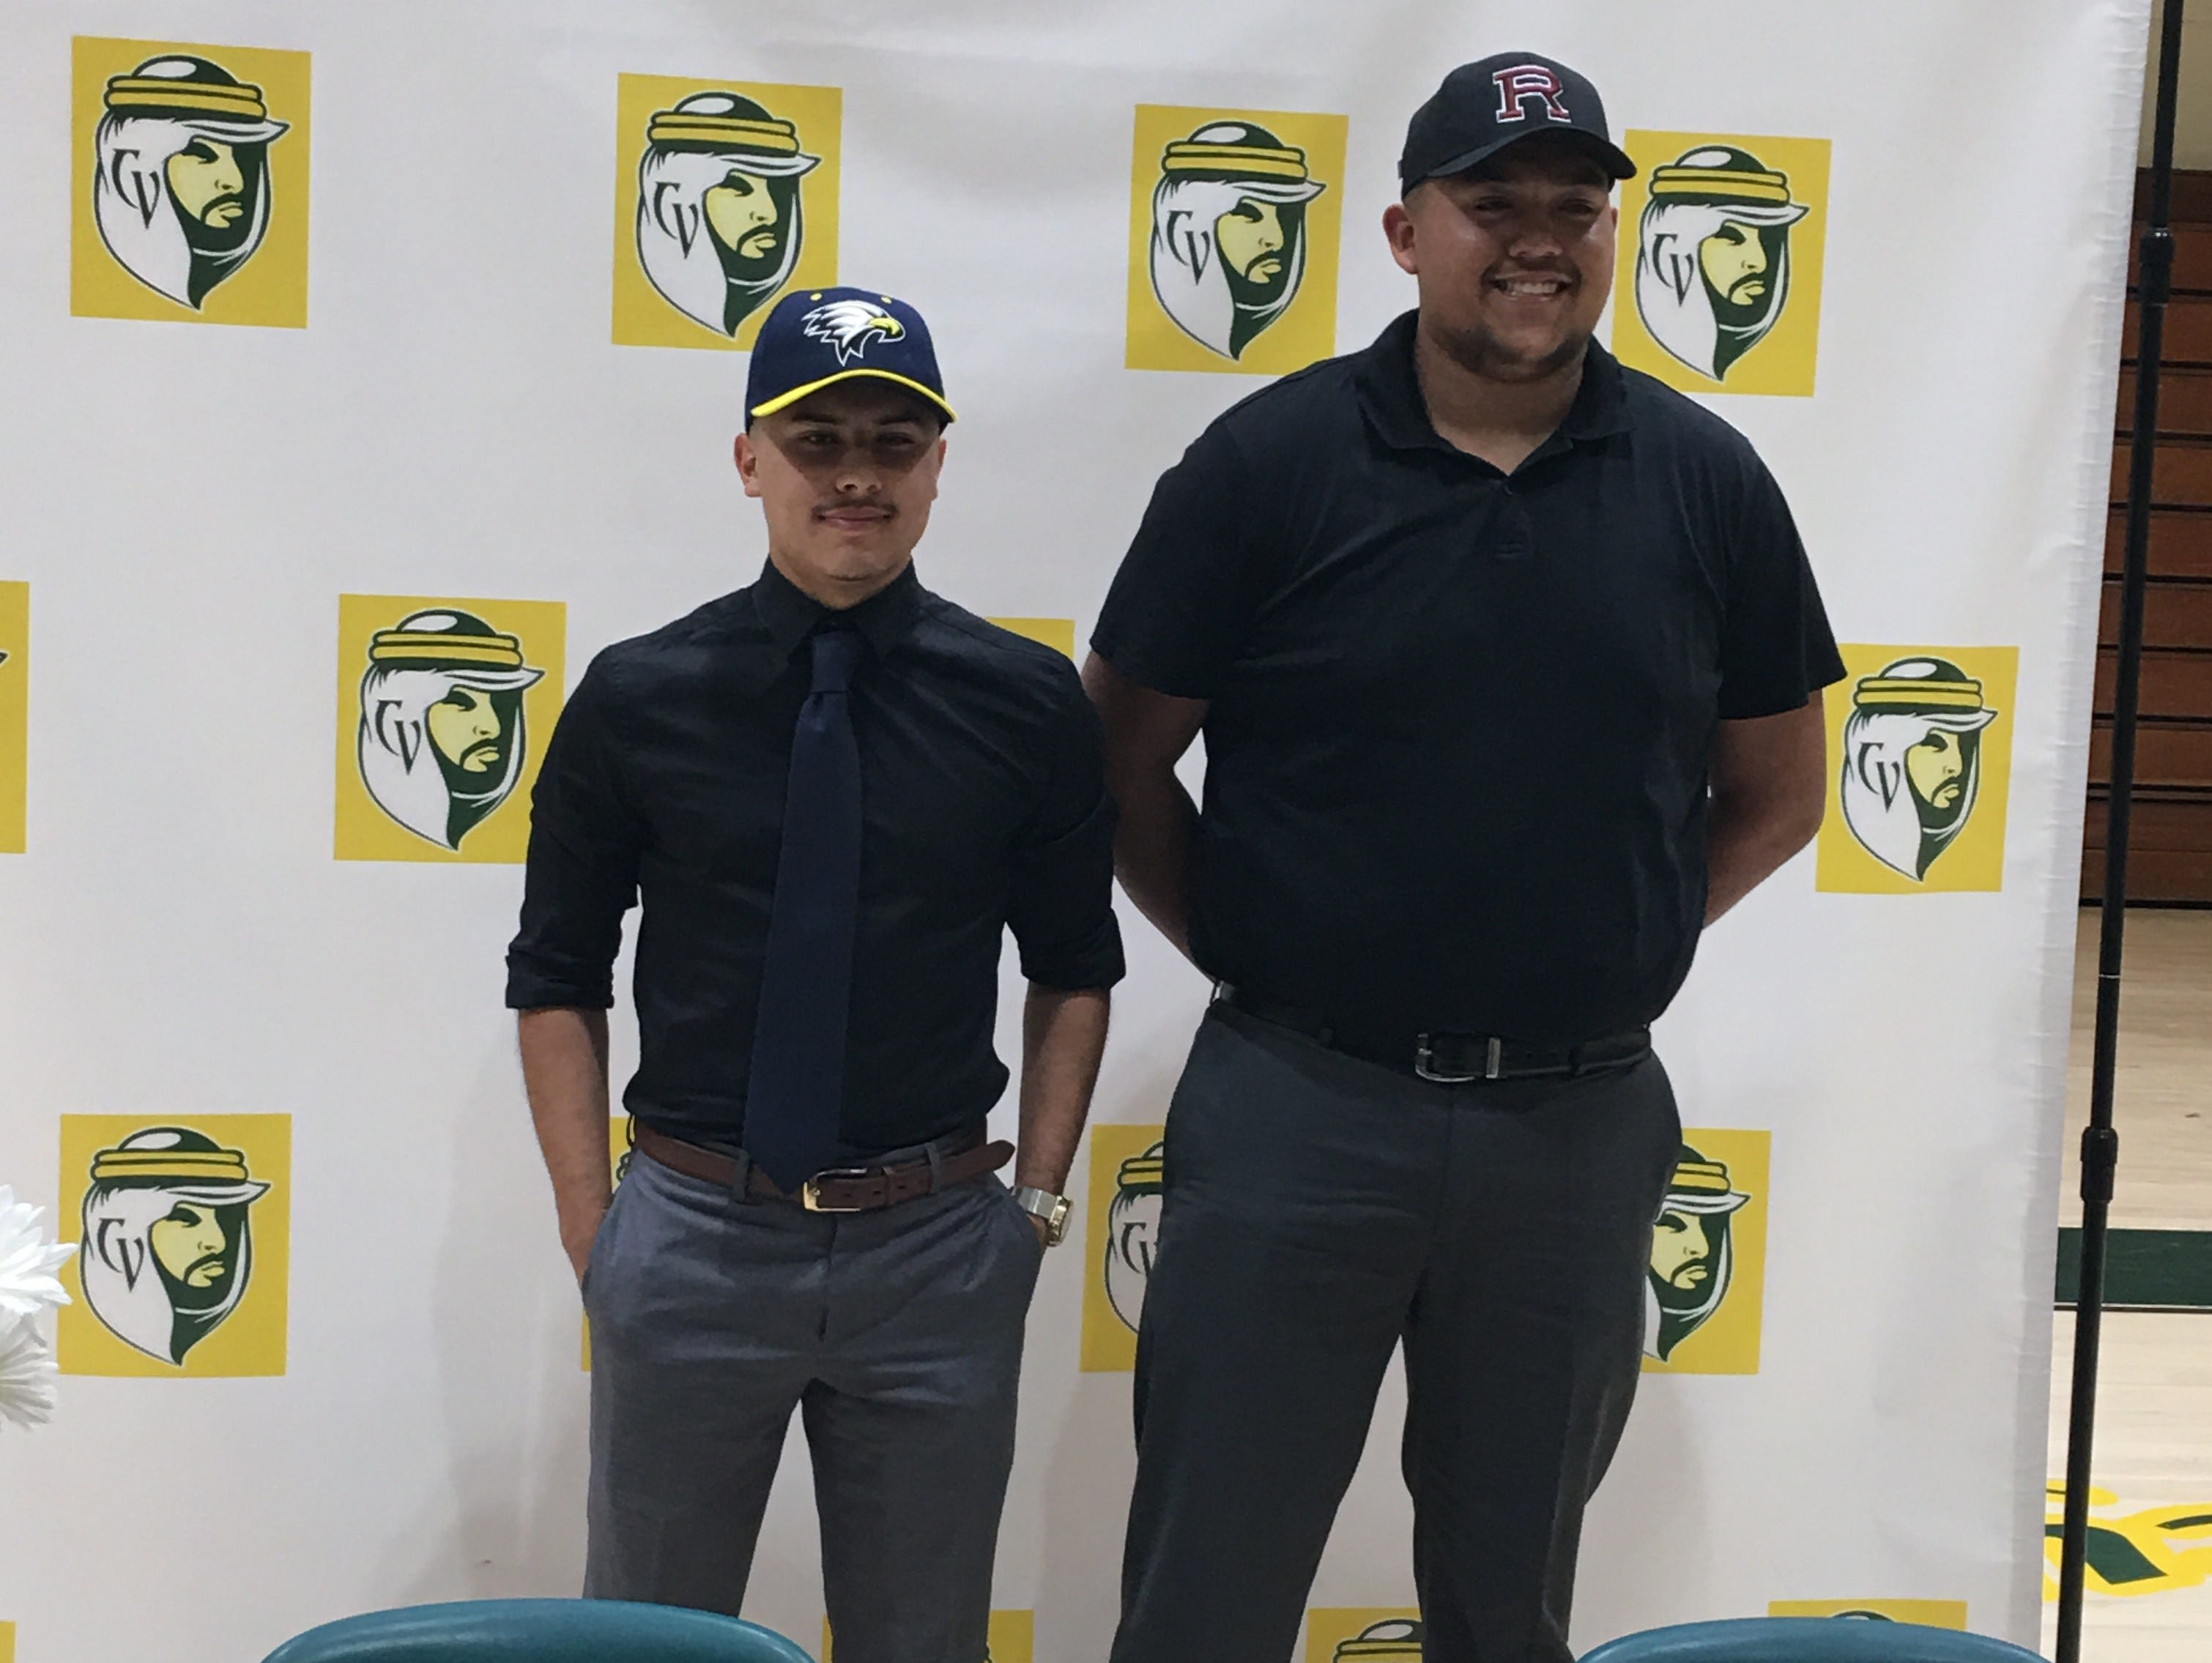 Coachella Valley seniors Wilfredo Ortiz and Nick Hernandez stand together with their team hats after signing their national letters of intent on Friday.